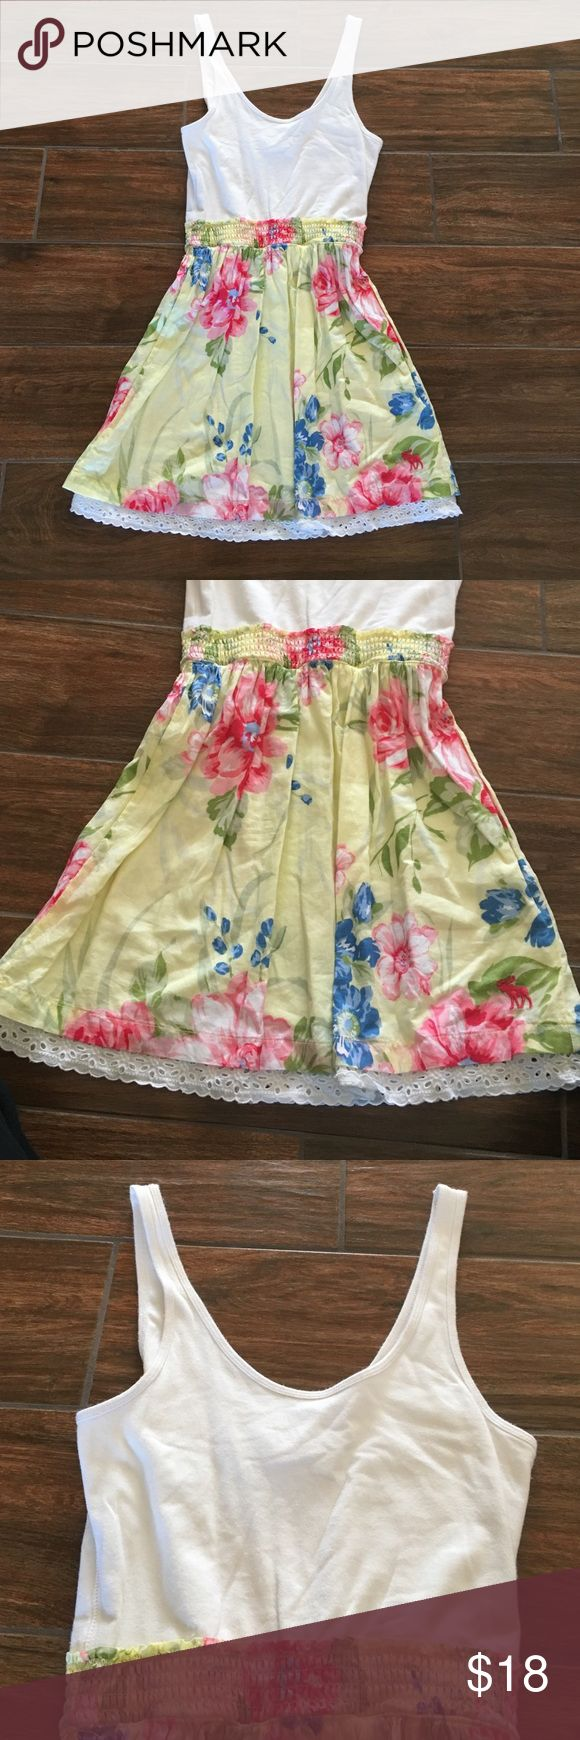 Floral Abercrombie and Fitch dress. Size medium. Floral Abercrombie and Fitch dress. Size medium. Only worn a few times. Abercrombie & Fitch Dresses Midi